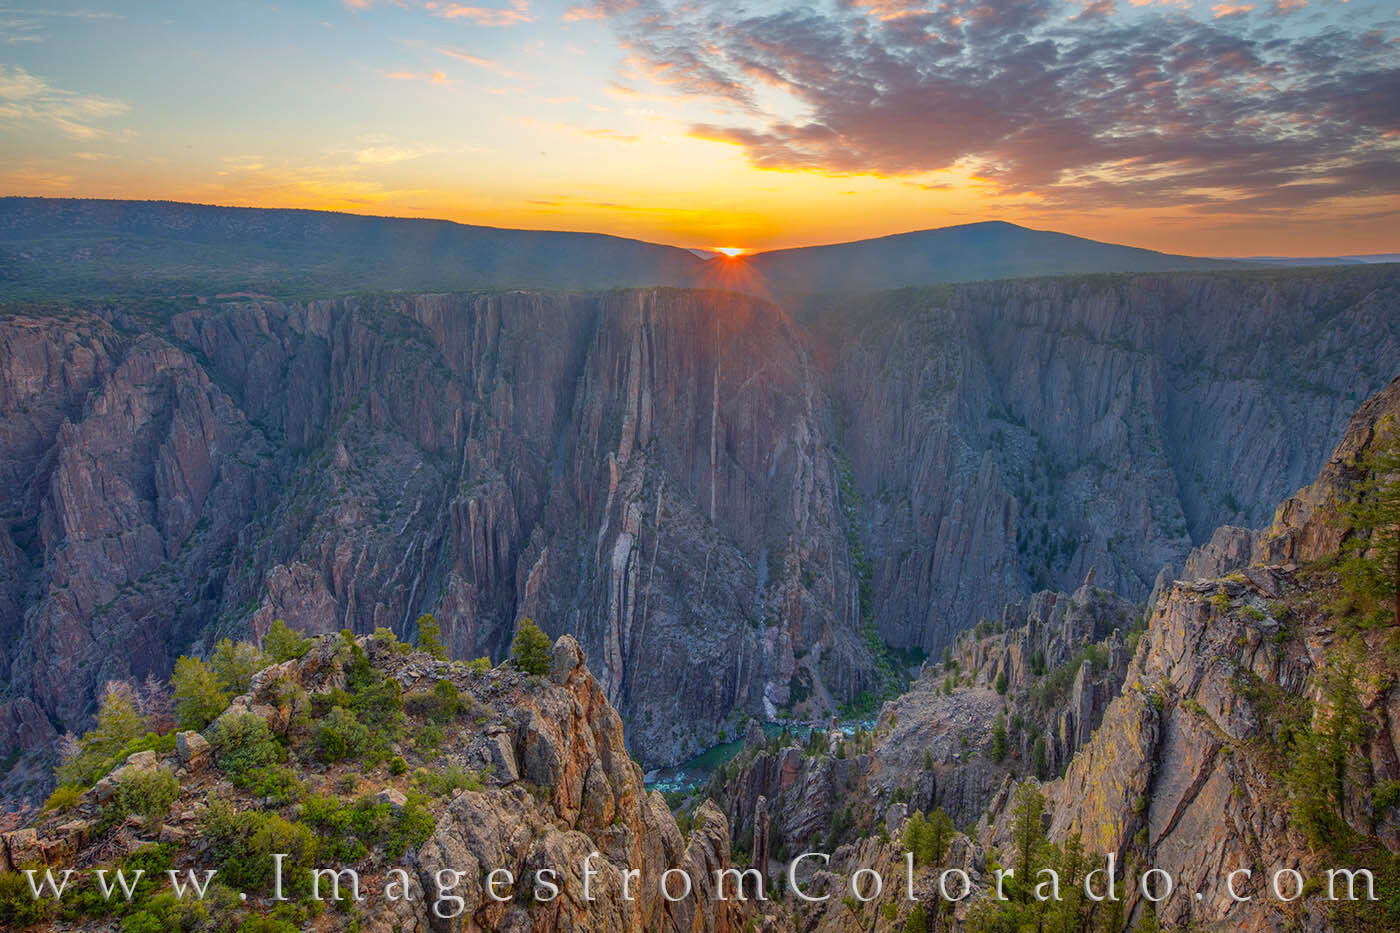 From Gunnison Point not far from the Visitor Center, the sun rises over the distant cliffs on a cool July morning. Far below...